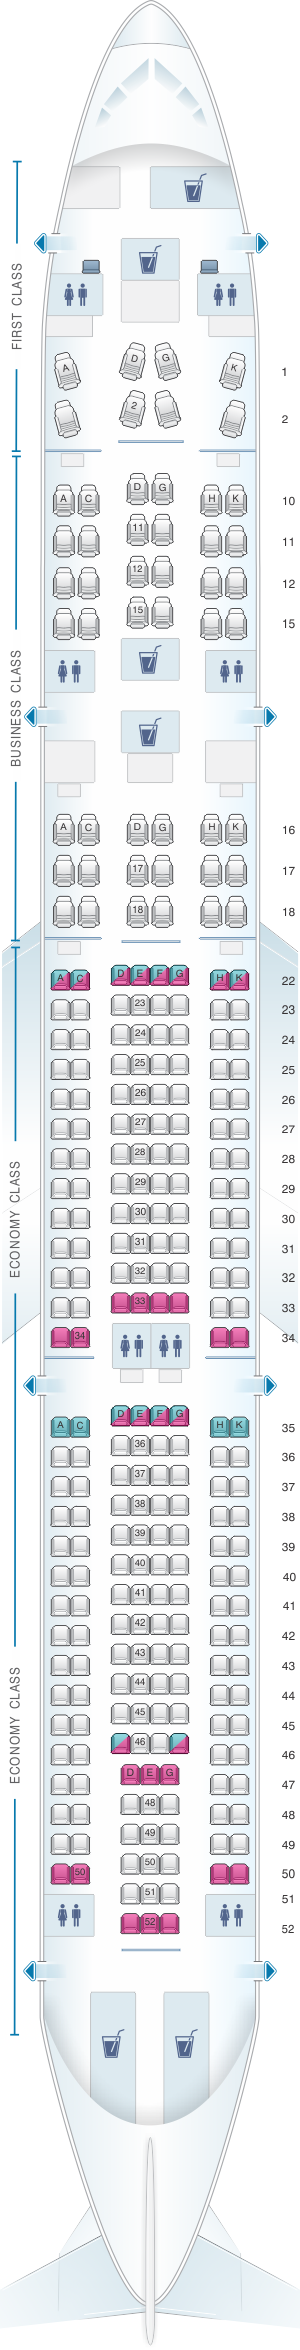 Seat map for Cathay Pacific Airways Cathay Dragon Airbus A330 300 (A33R)